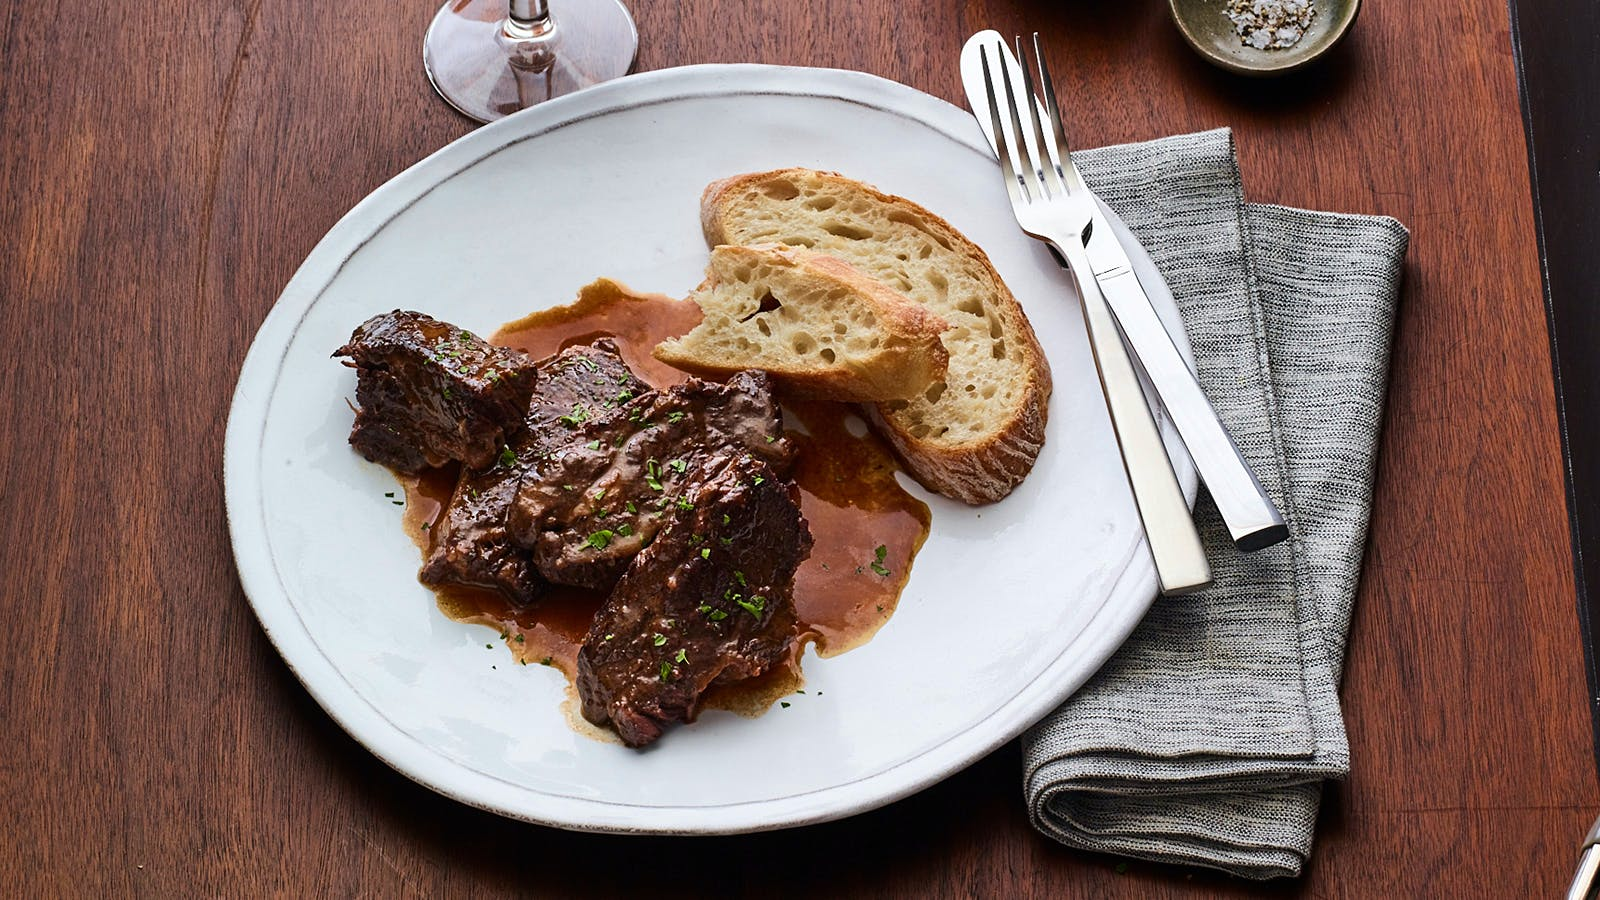 Braised Short Ribs with Horseradish Cream